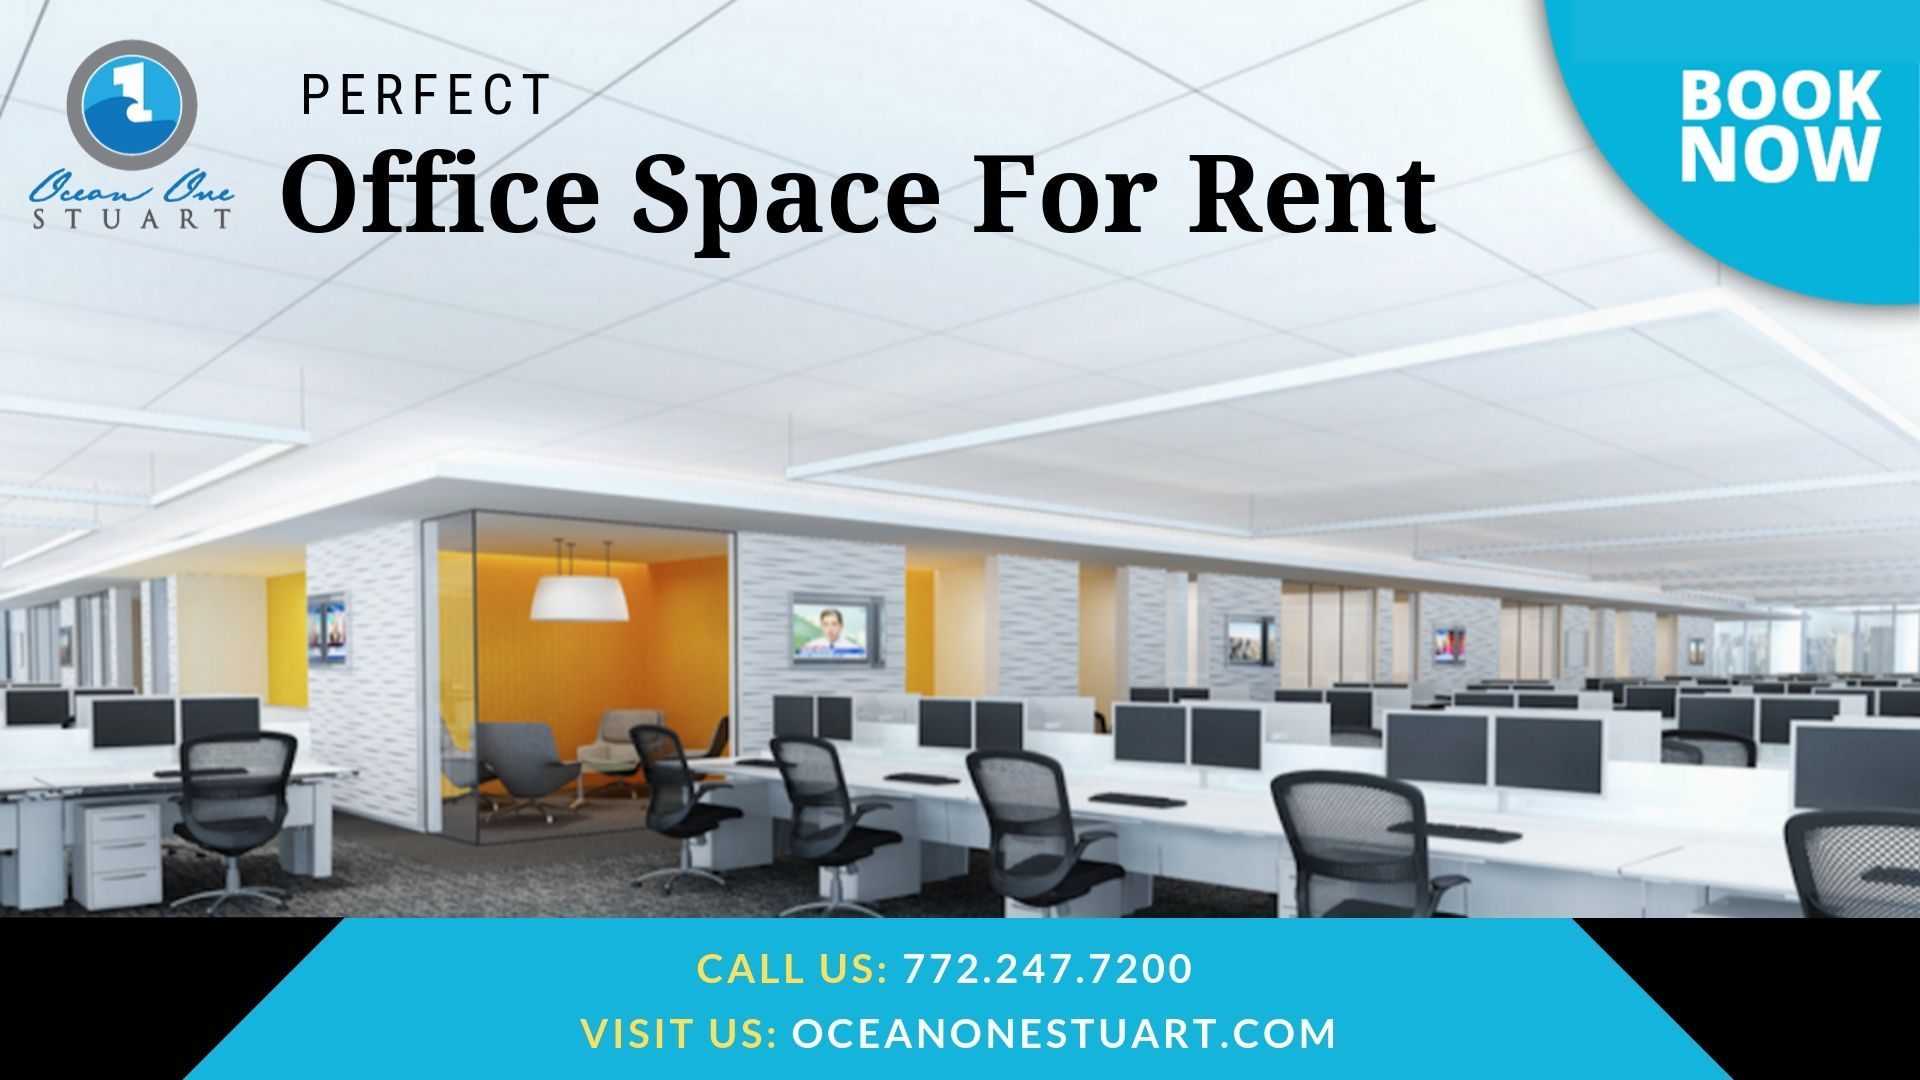 Perfect Office Space For Rent Modern Office Space Office Space Rent